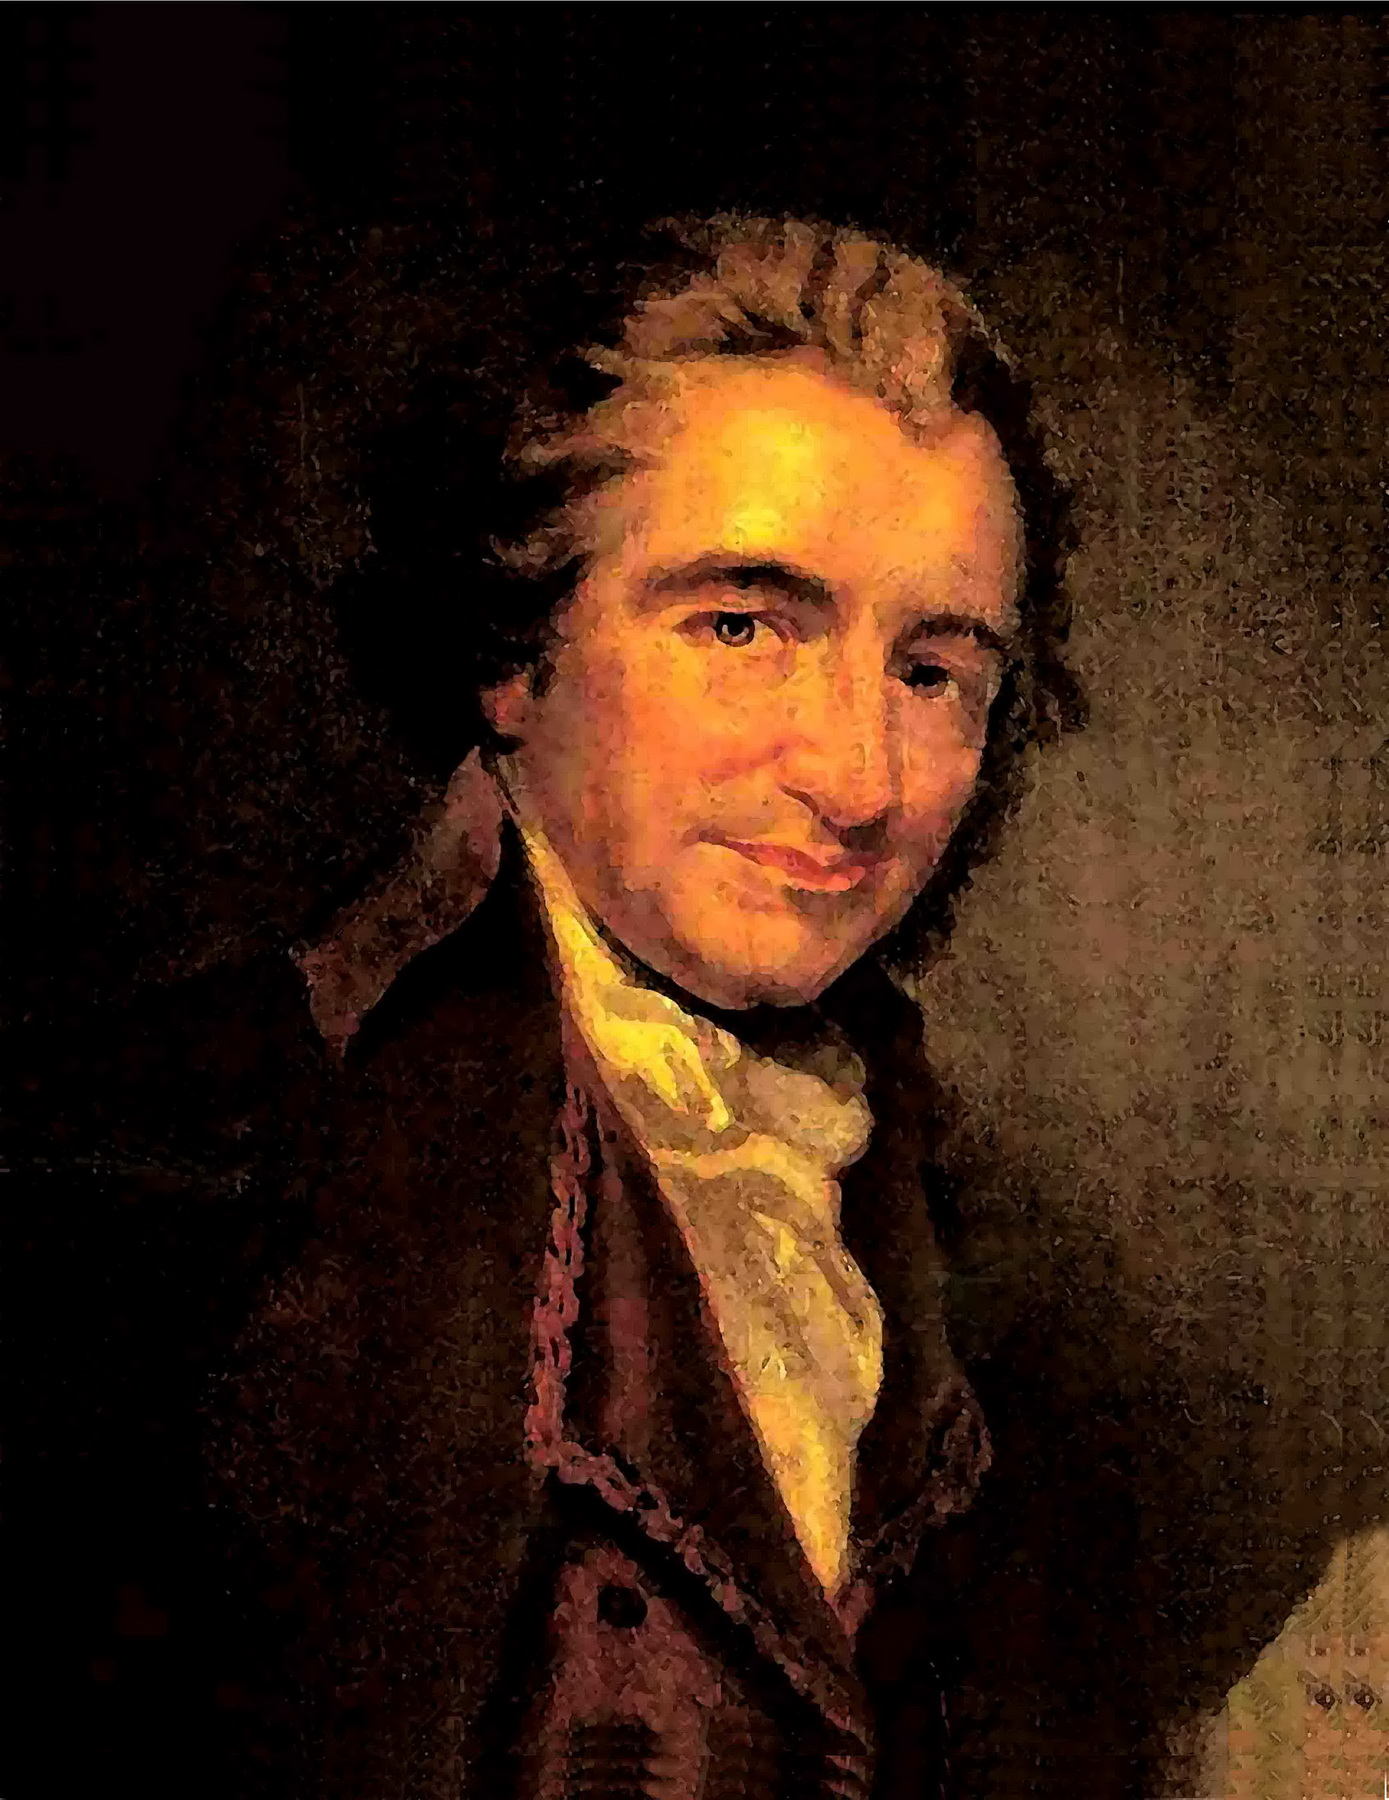 Thomas Paine, author-patriot, 1737-1809